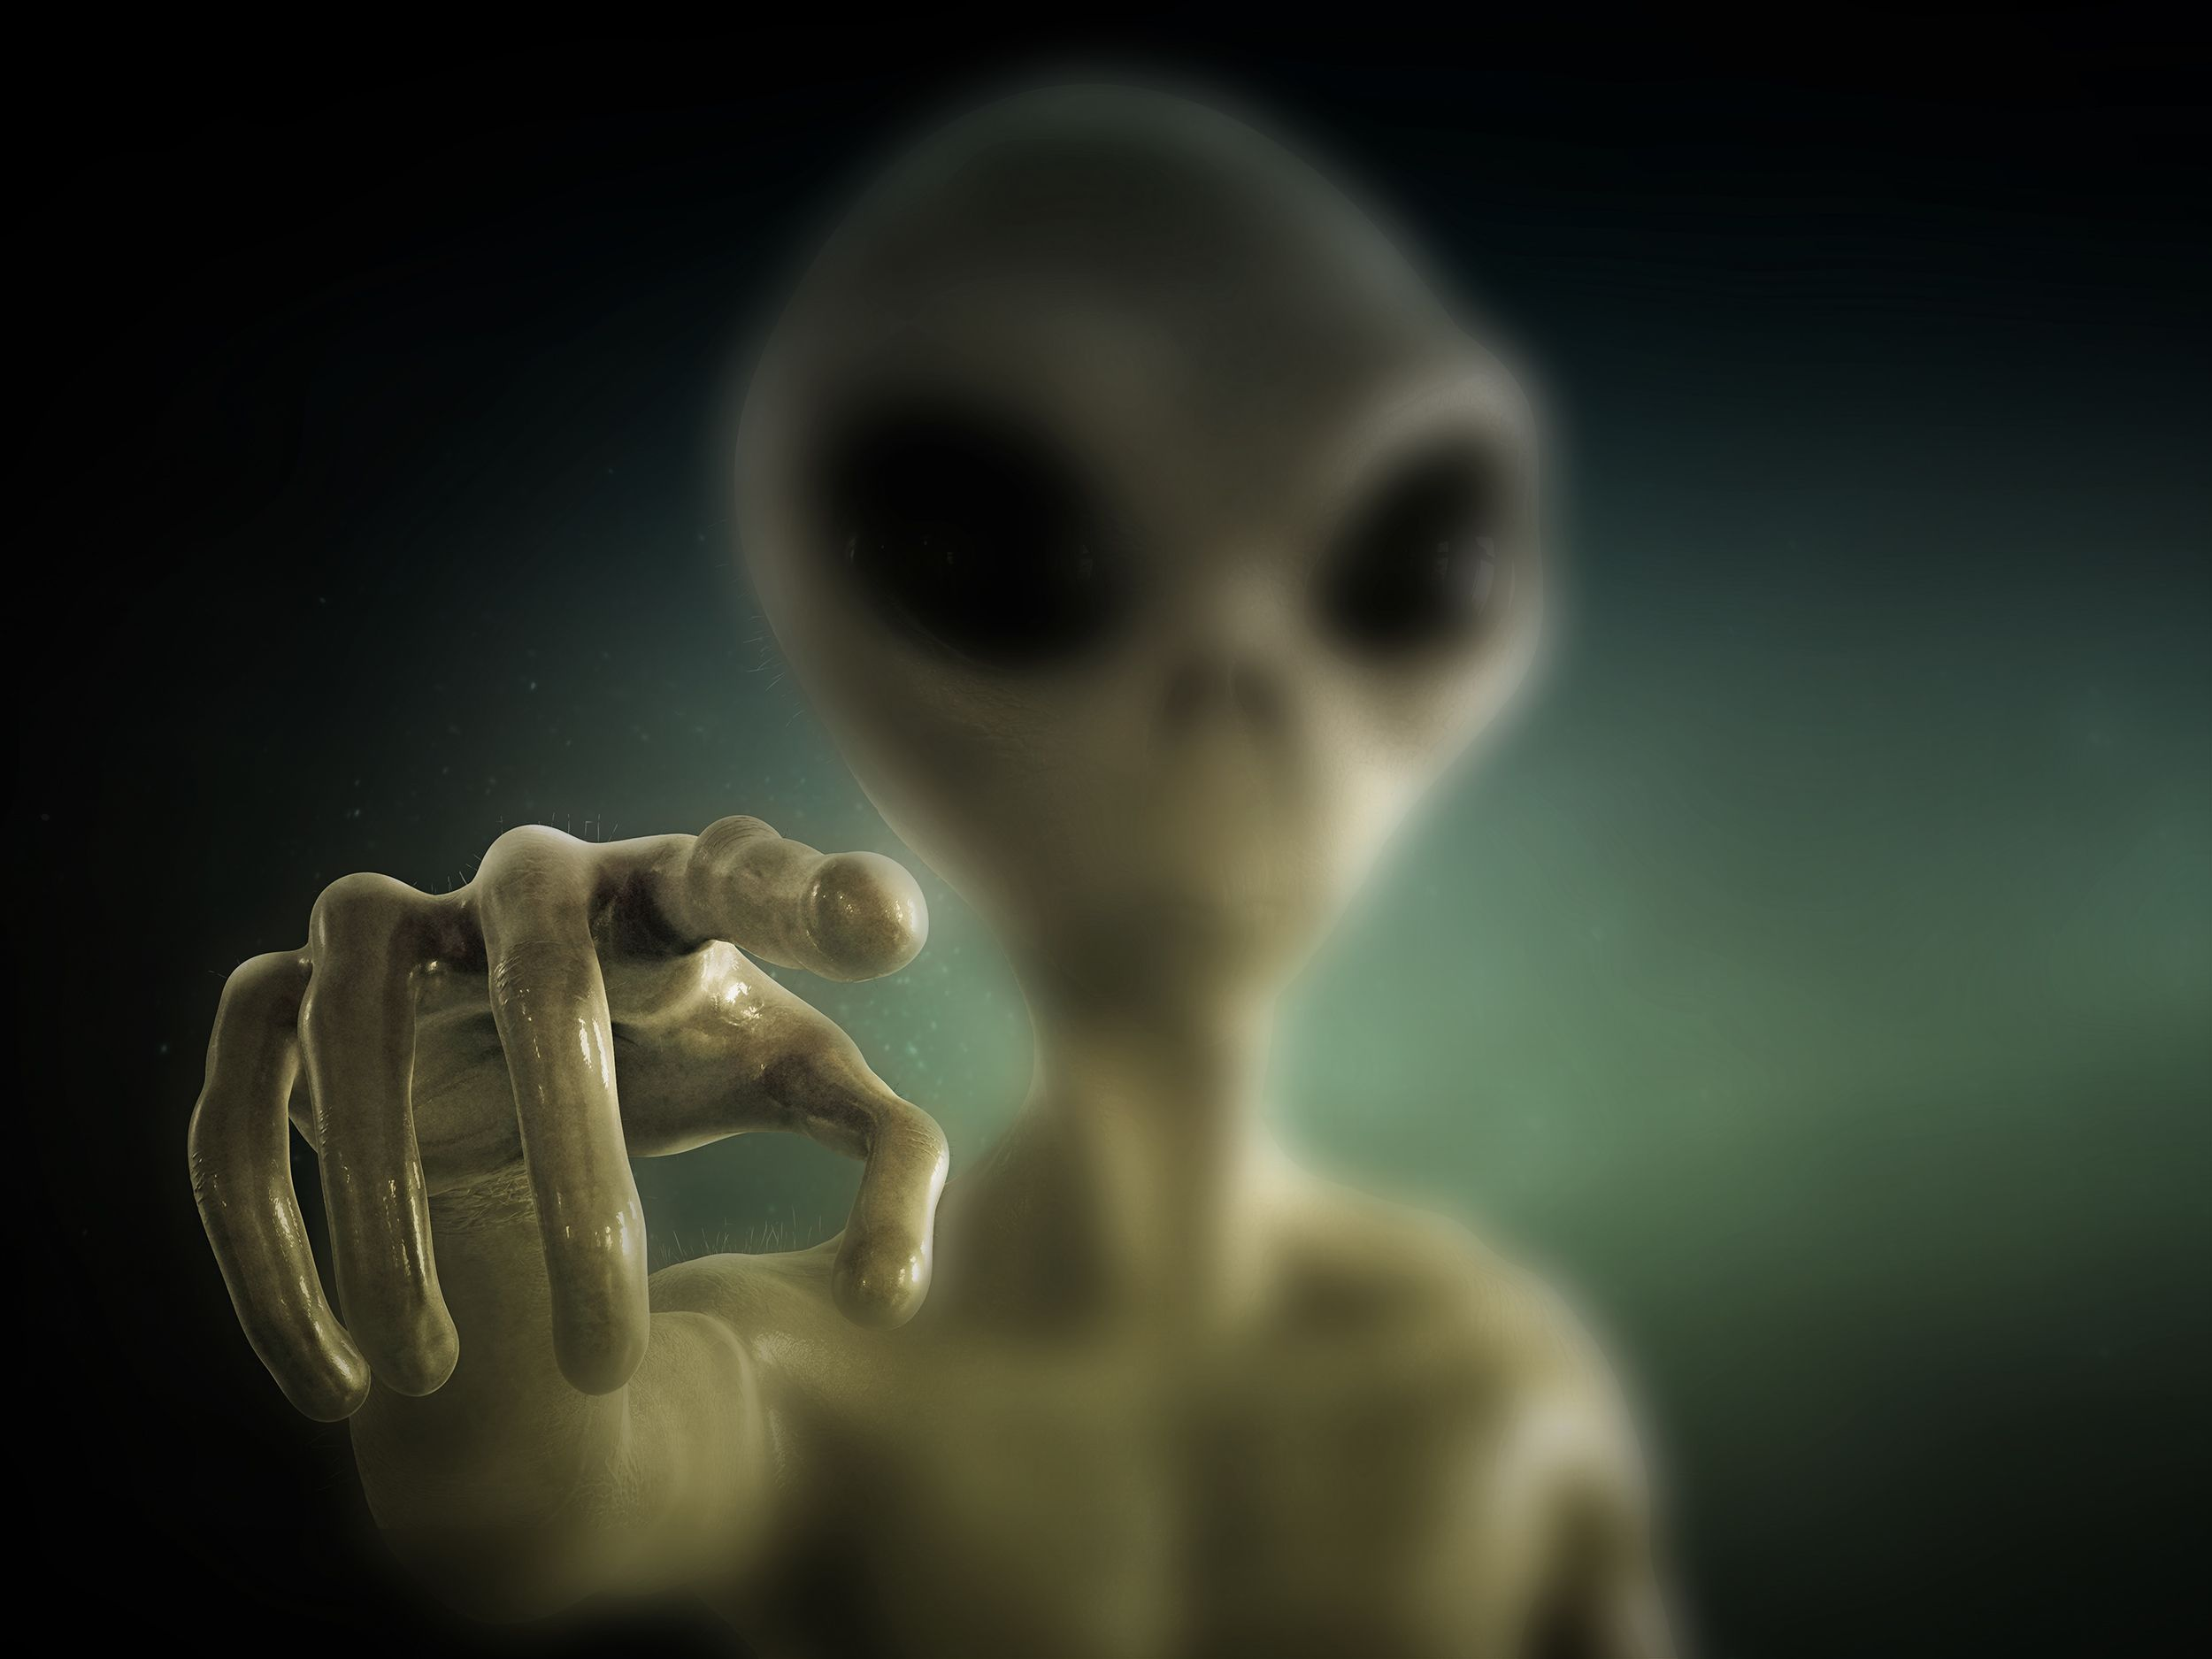 Alien proven real by NASA